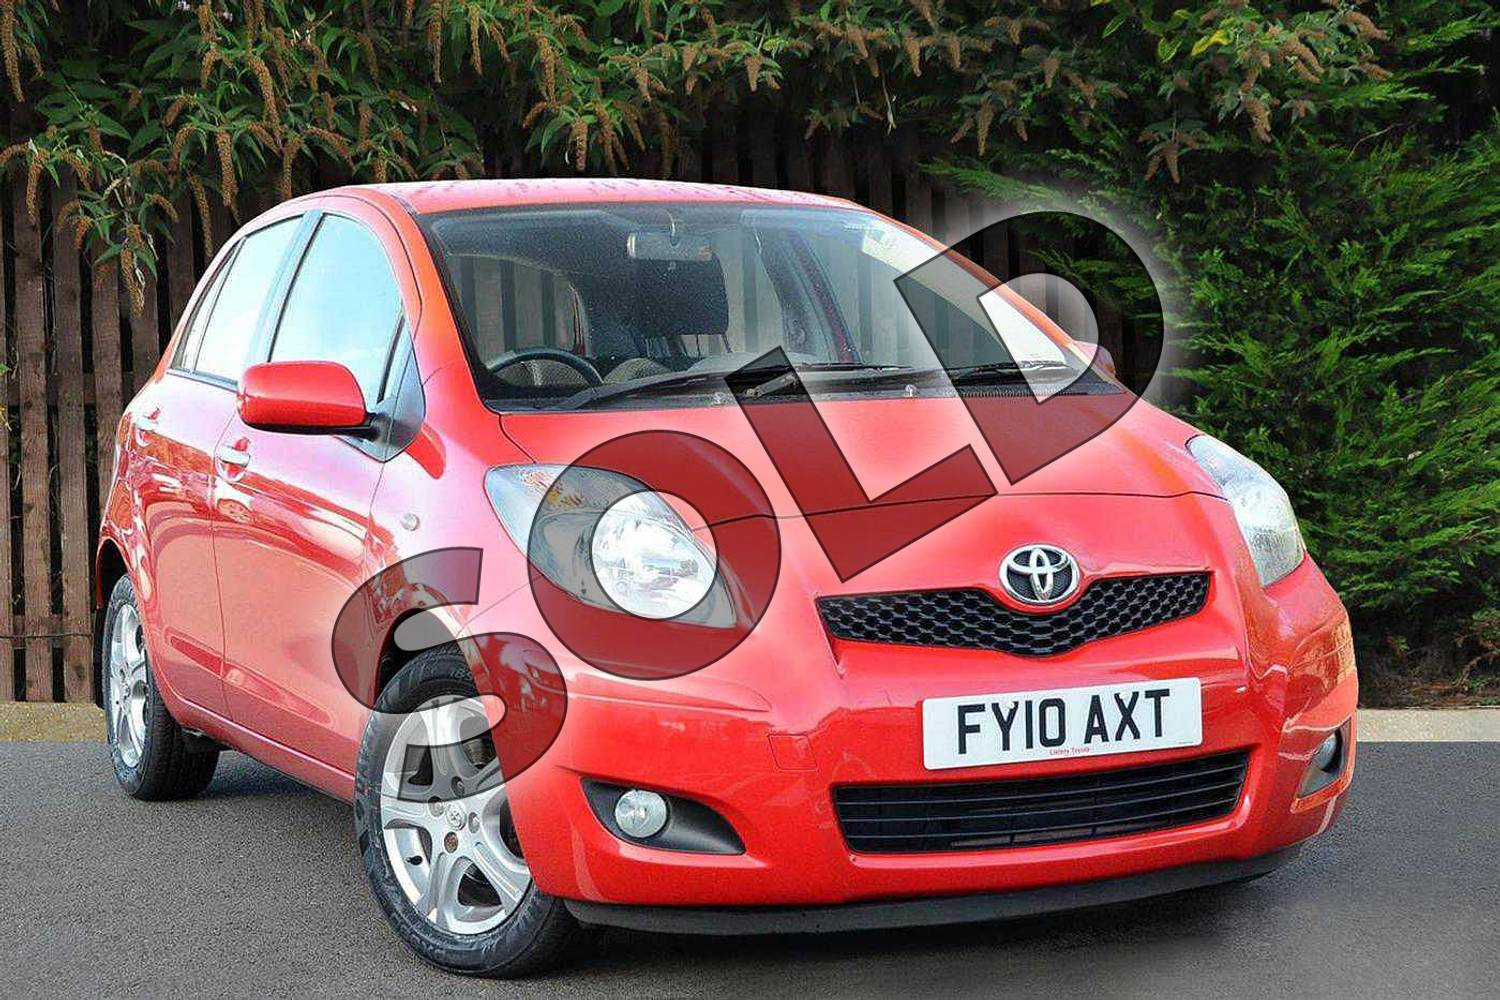 2010 Toyota Yaris Hatchback 1.33 VVT-i TR 5dr (6) in Red Pop at Listers Toyota Coventry